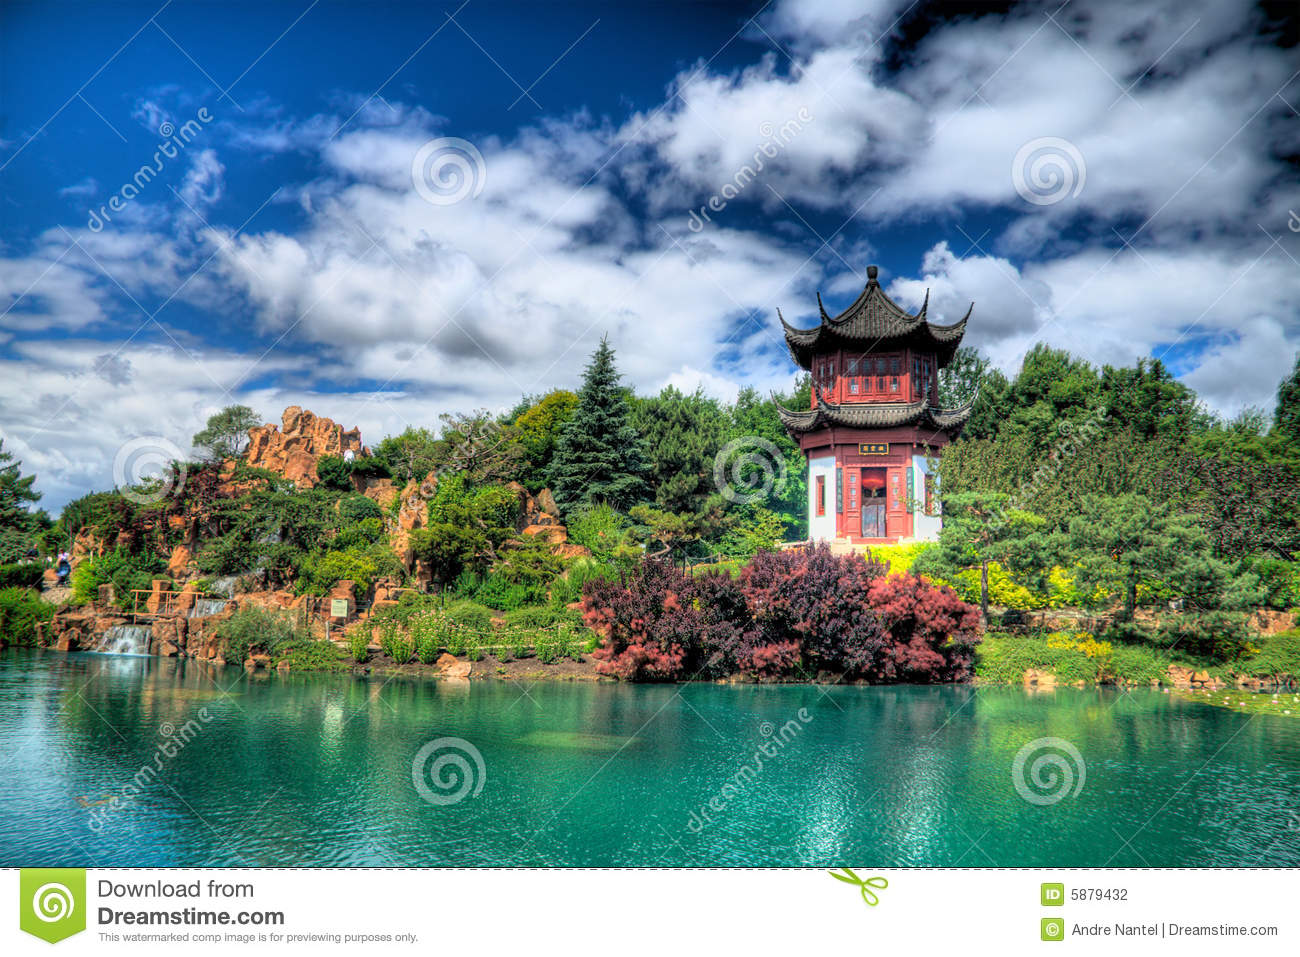 Jardin chinois photographie stock image 5879432 for Jardin chinois yvelines